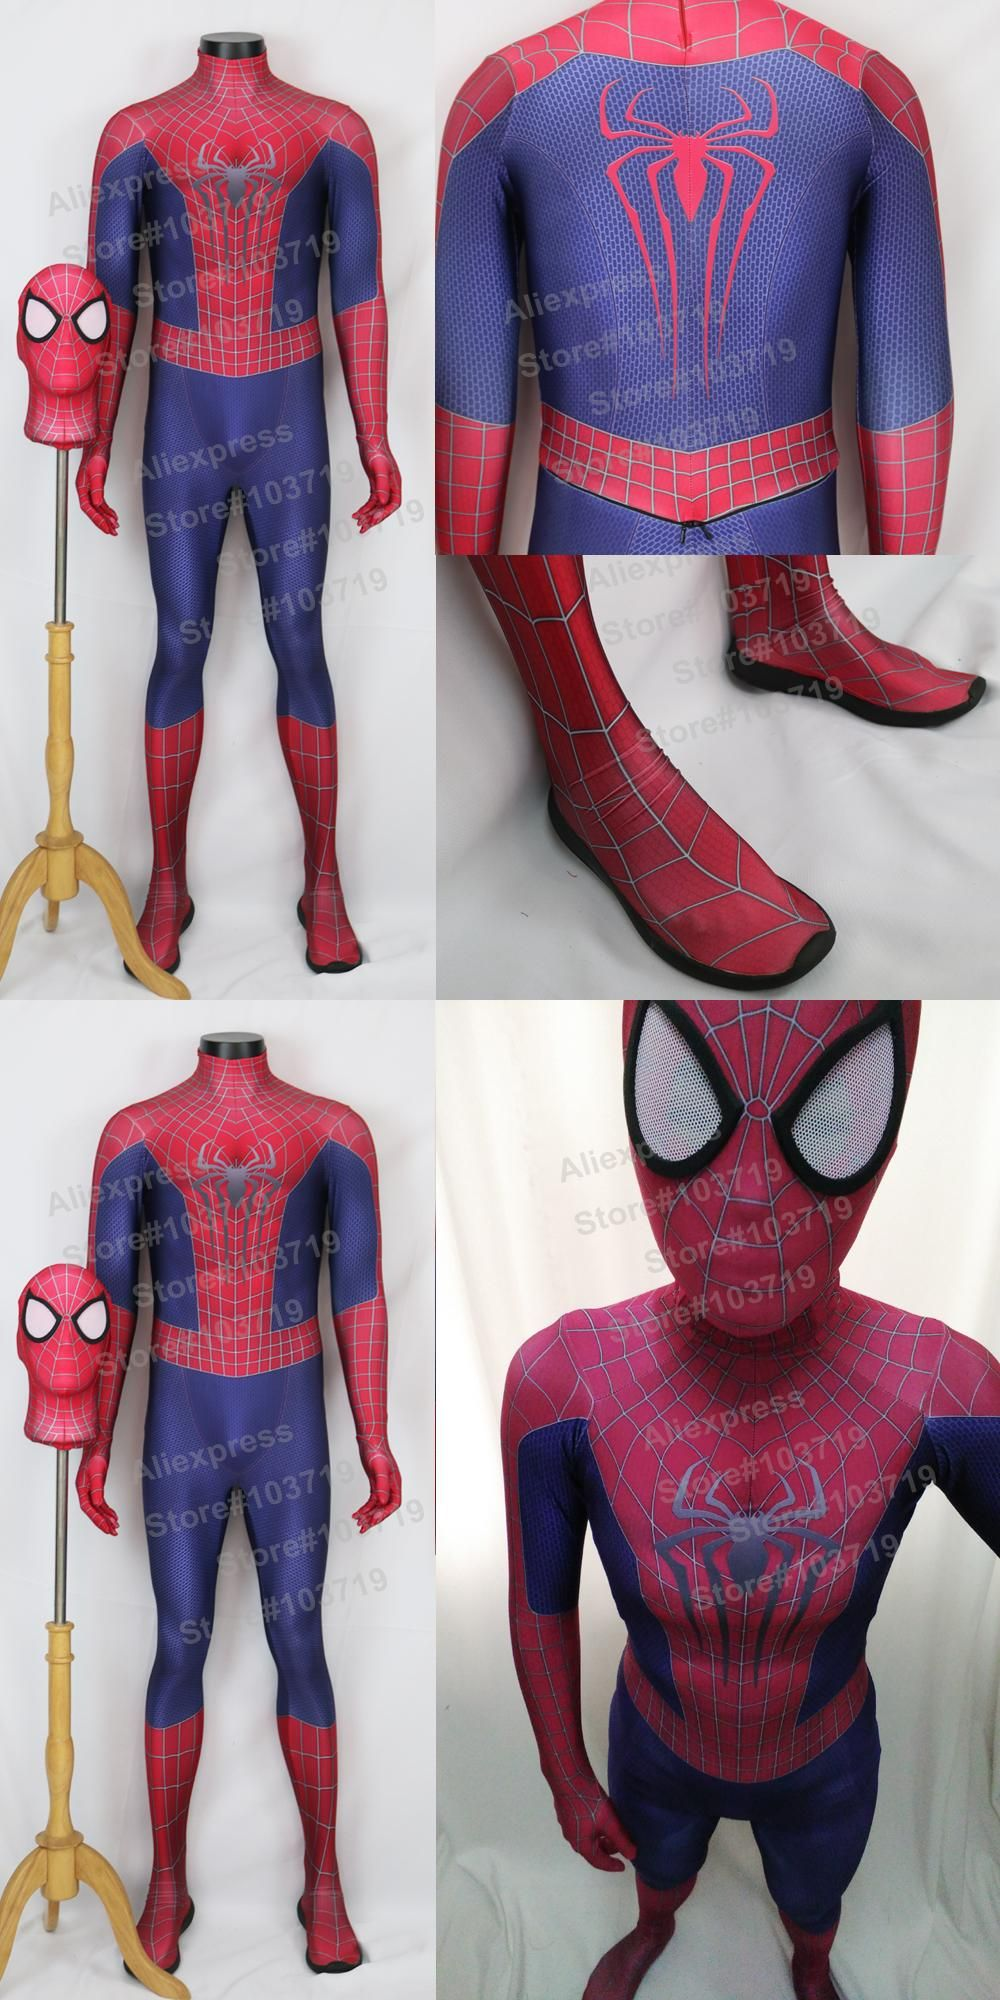 Hero Catcher High Quality 3D Pattern Amazing Spiderman Suit Spiderman Costume With Mask Hero Spiderman Spandex Suit & Hero Catcher High Quality 3D Pattern Amazing Spiderman Suit ...